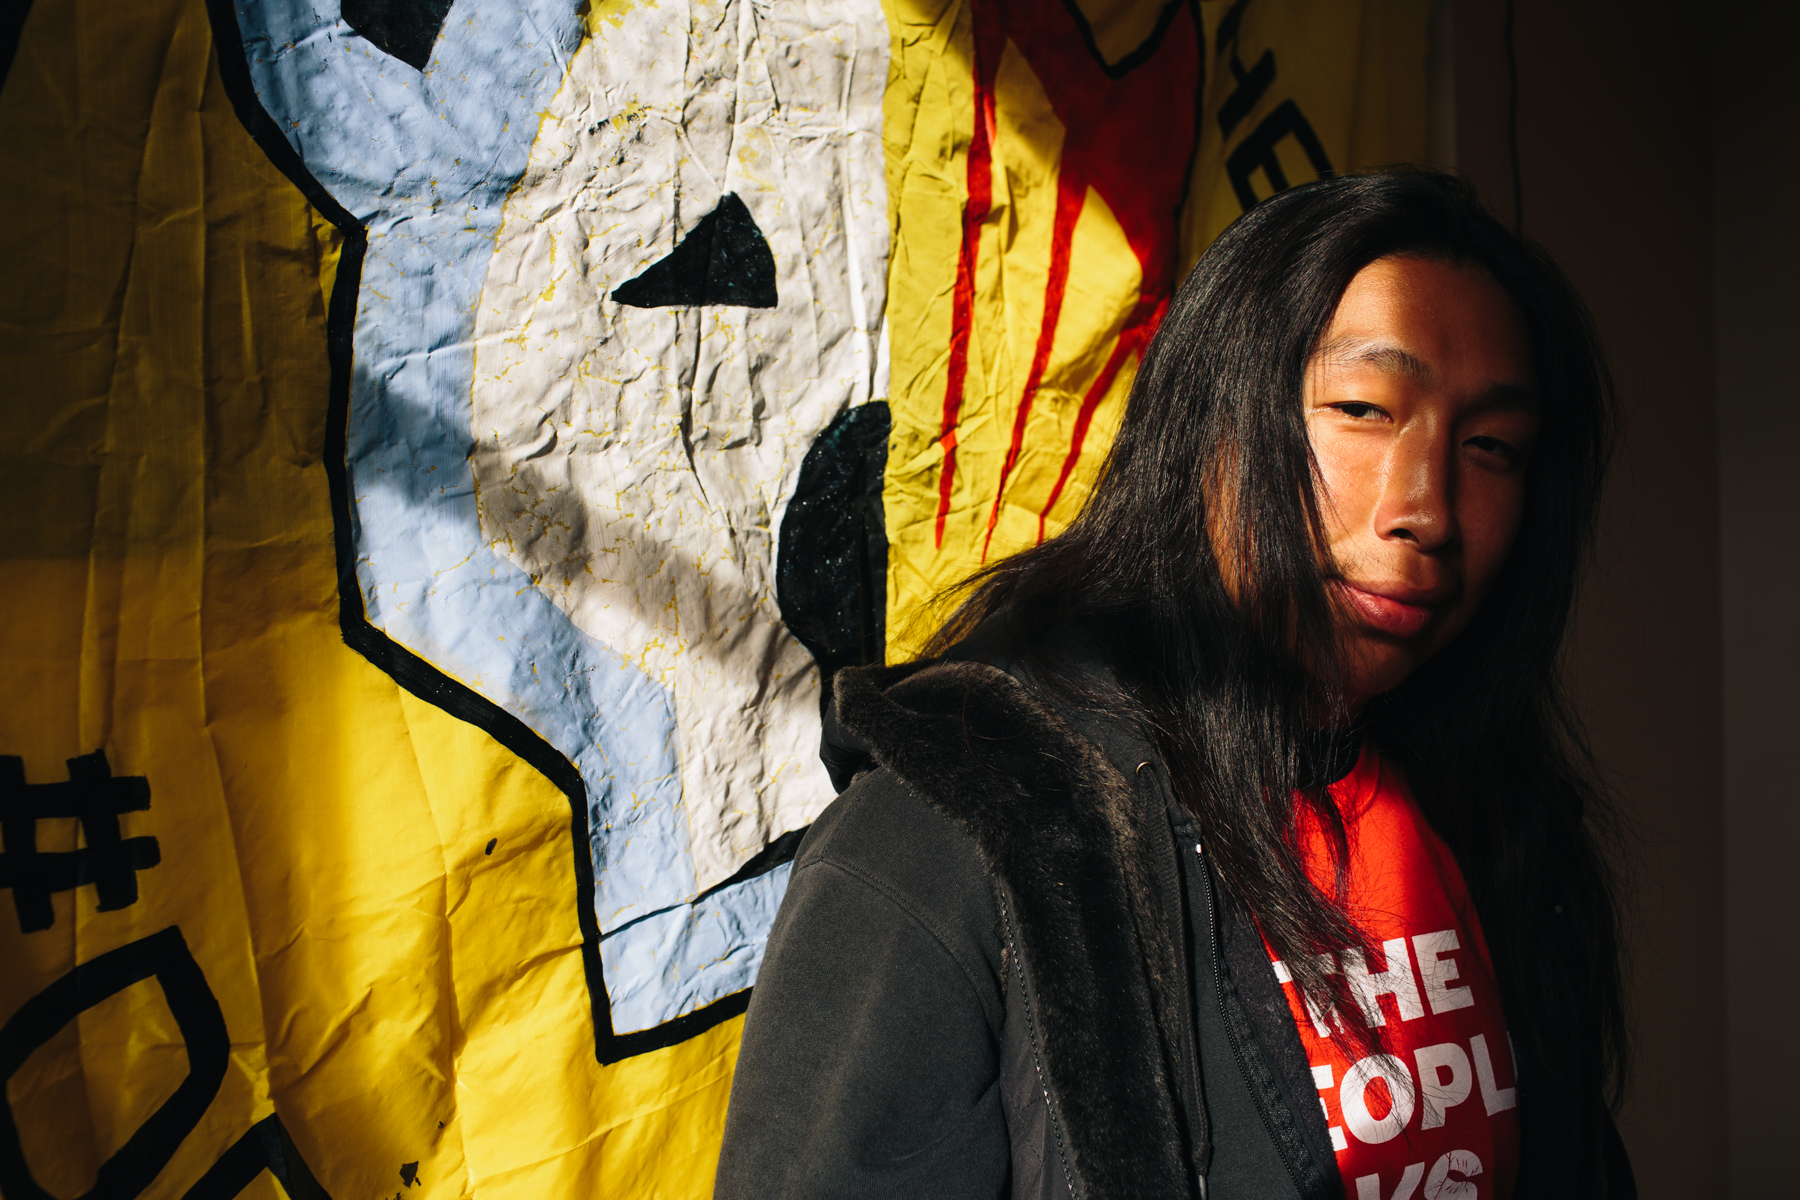 Ryan Joe, 26, a Yupik college student from Anchorage, is involved in planning a rally during President Obama's Alaska visit.